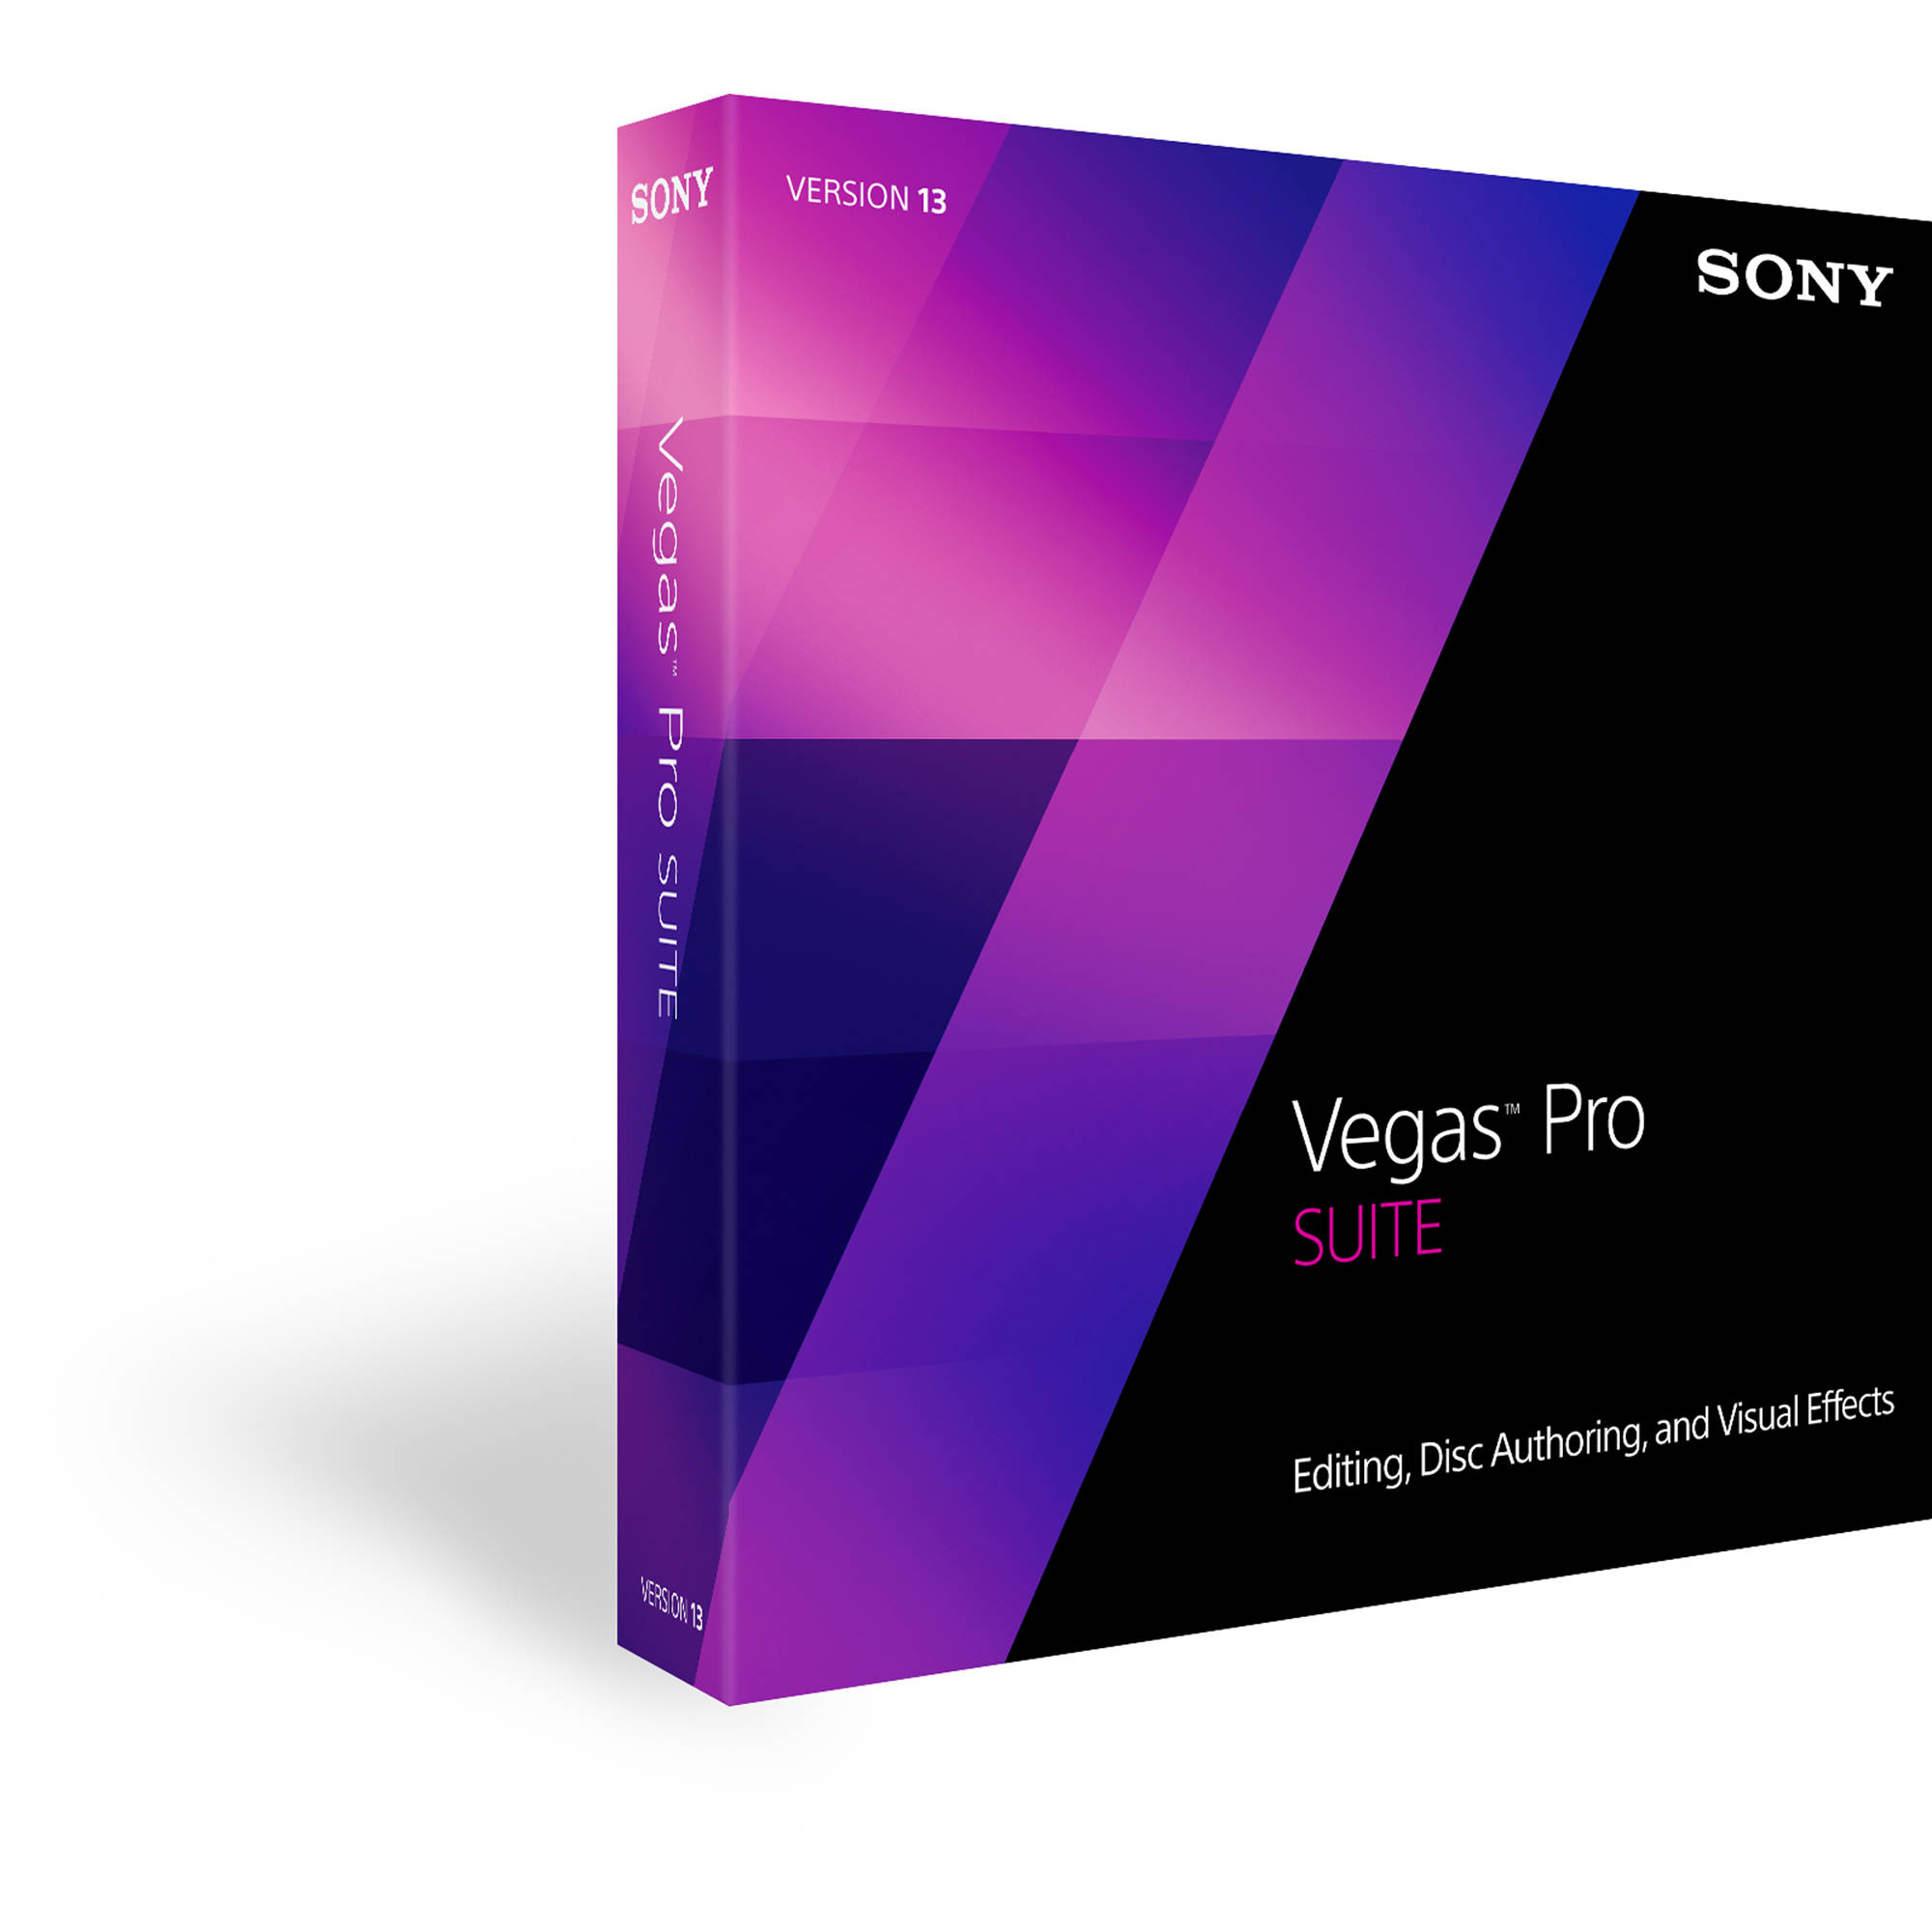 how to move images in sony vegas pro 13